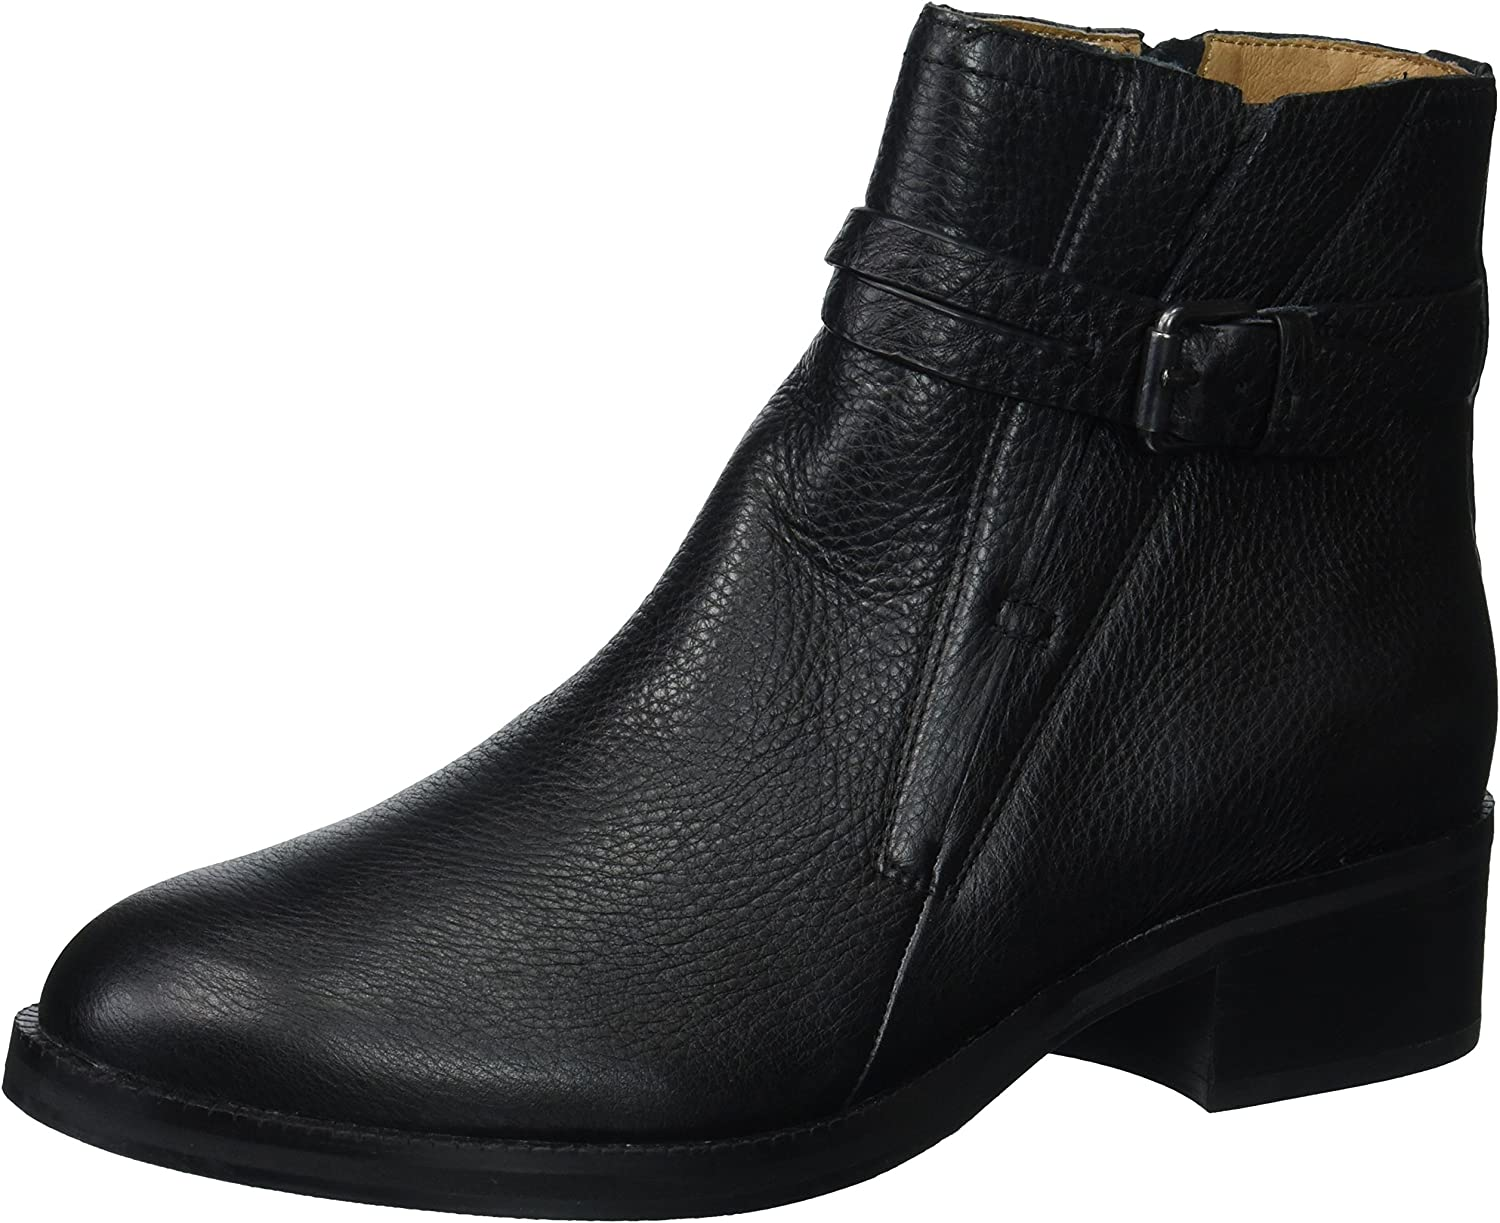 Gentle Souls Women's Percy Bootie with Buckle Detail Ankle Boot